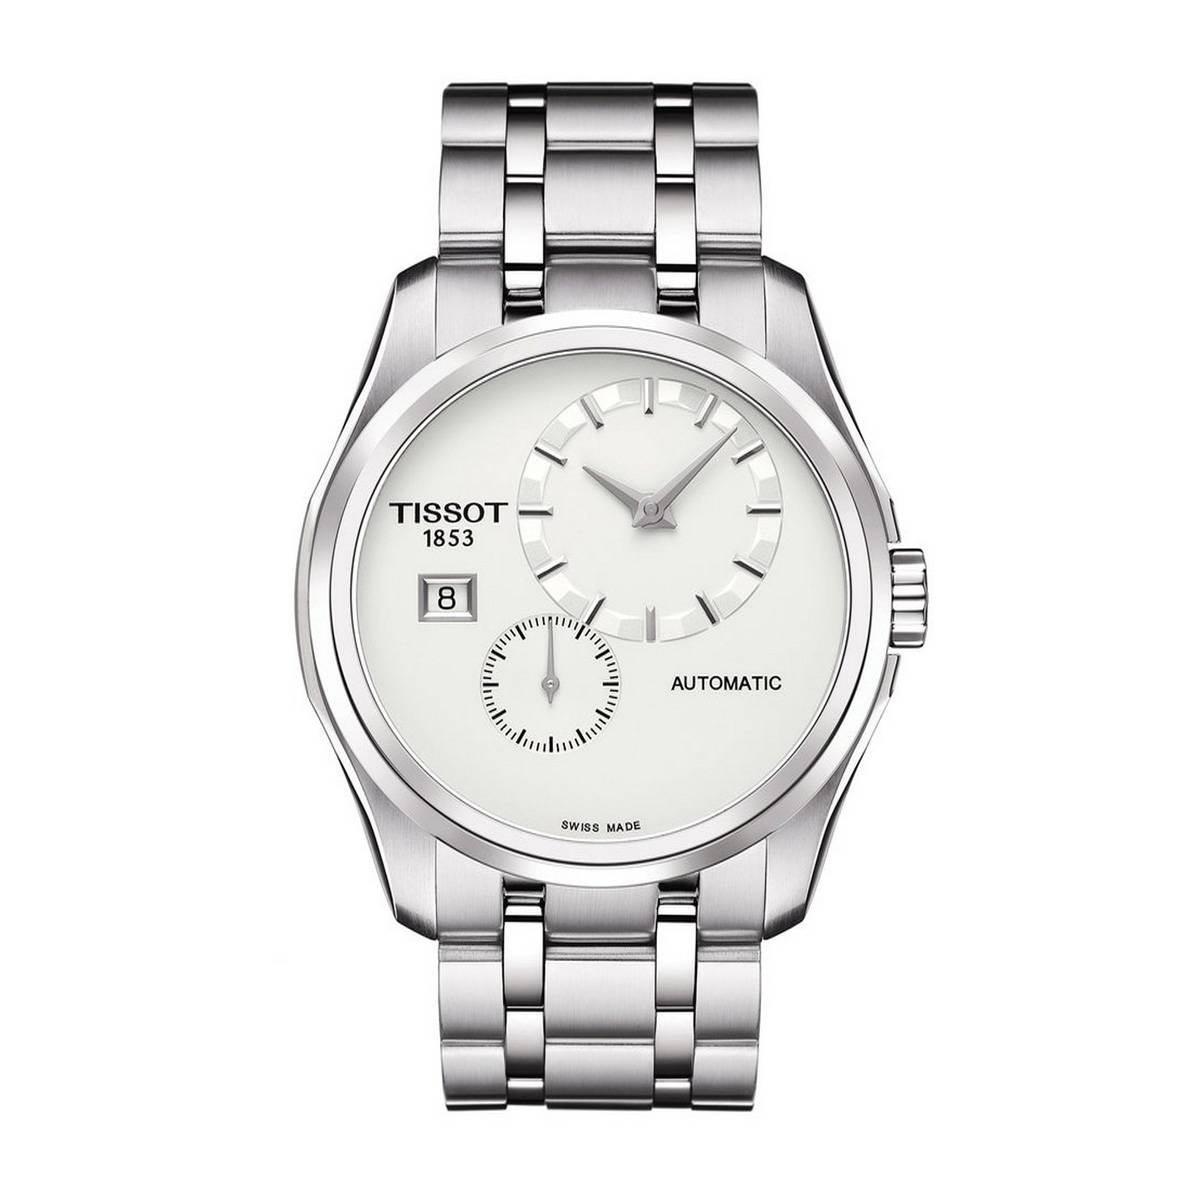 TISSOT COUTURIER AUTOMATIC WHITE DIAL MEN'S WATCH - T035.428.11.031.00